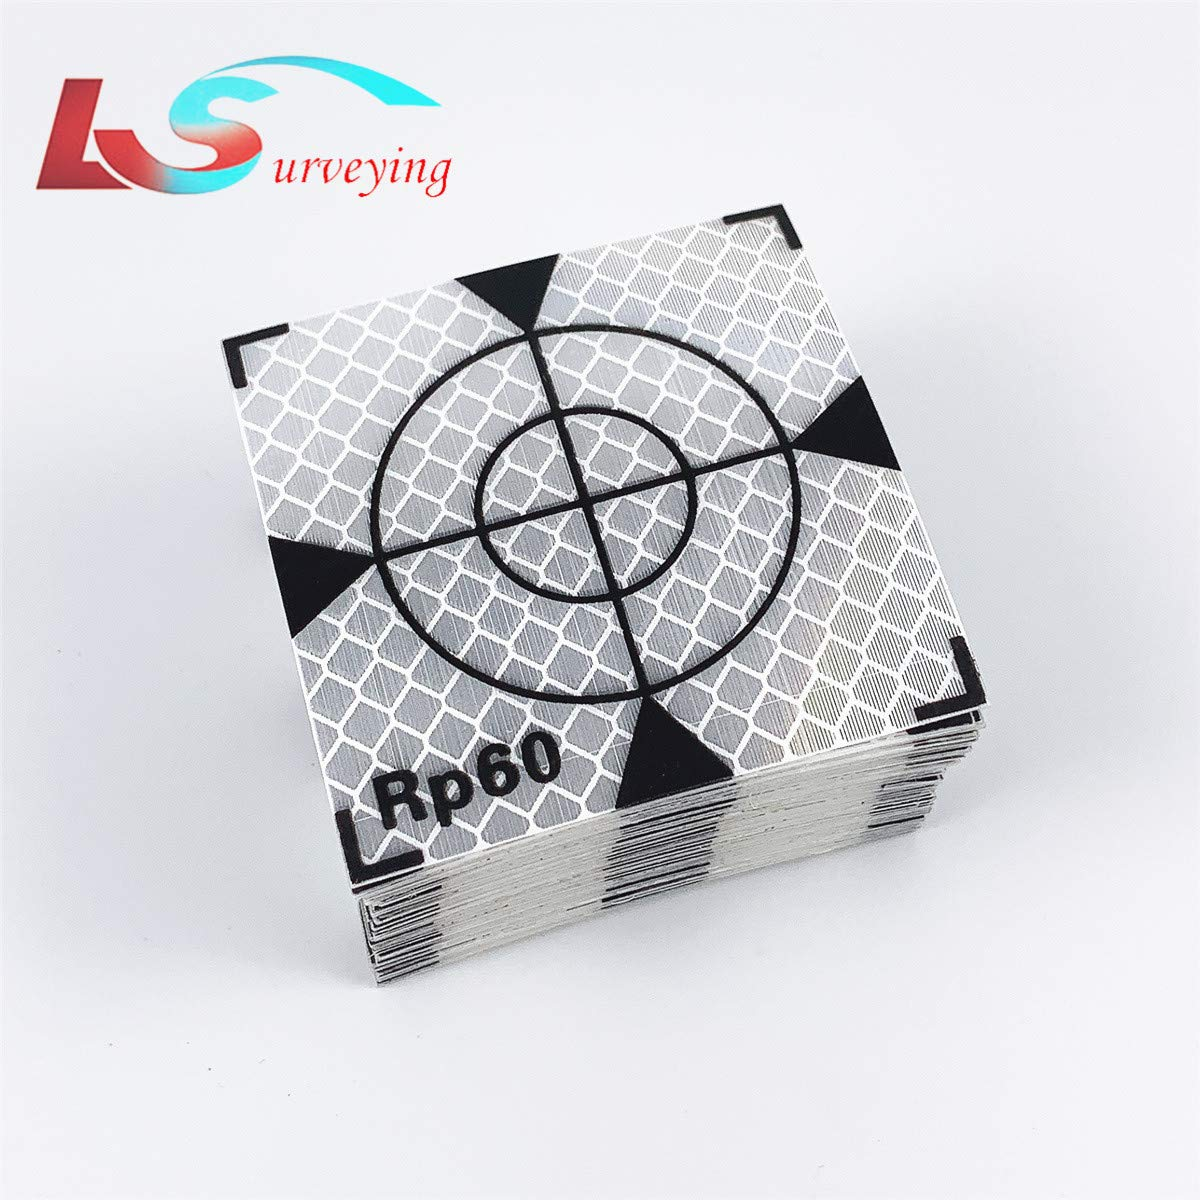 New 100PCS Paste Up Reflector Sheet Reflective Tape Target 60x60mm for Topcon Sokkia Trimble Leica Surveying by LS2015